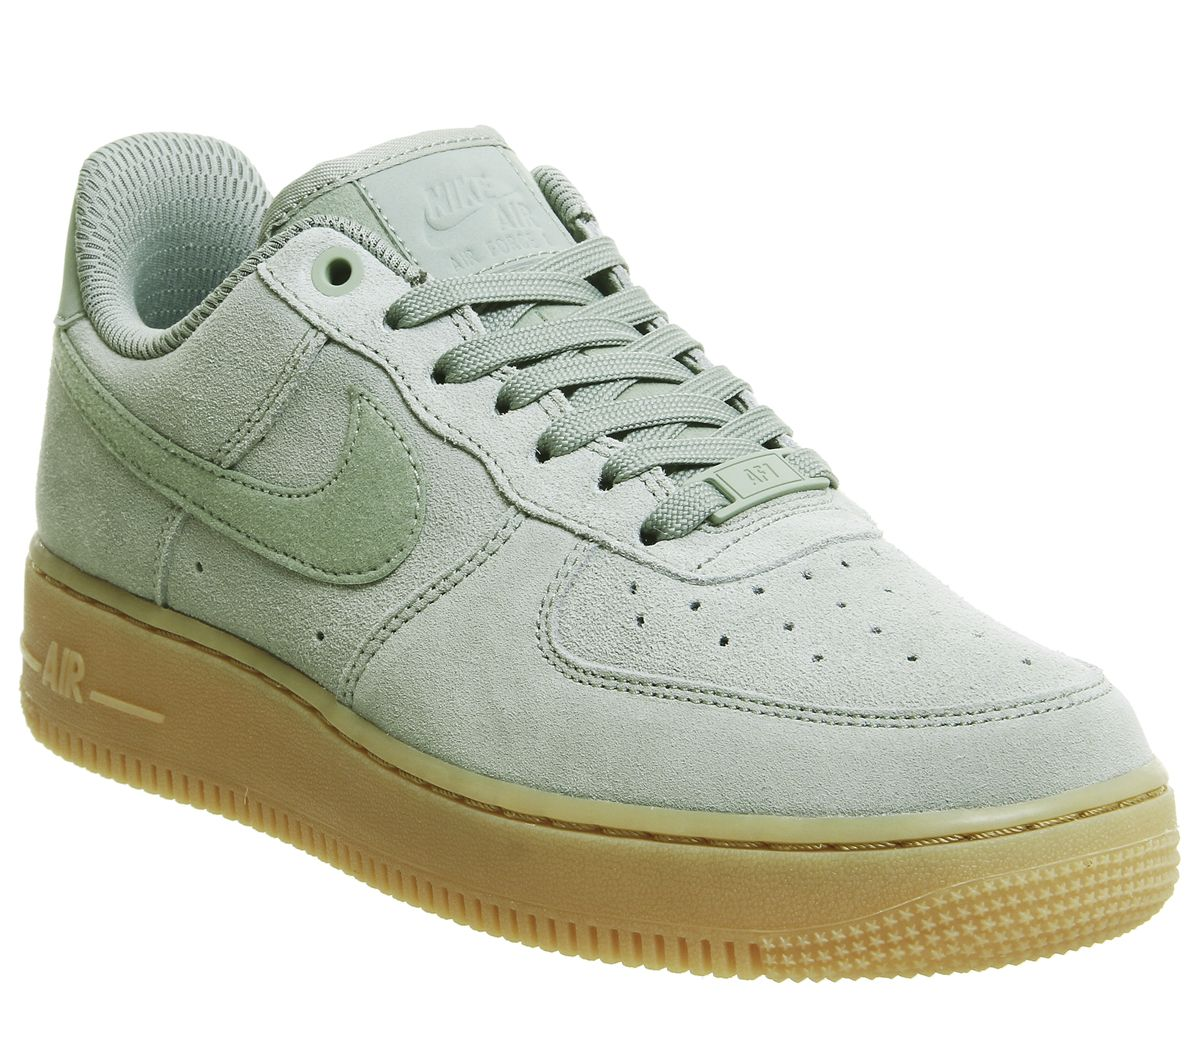 online store bd11b 10676 Nike Air Force 1 07 Trainers Mica Green Gum - Hers trainers